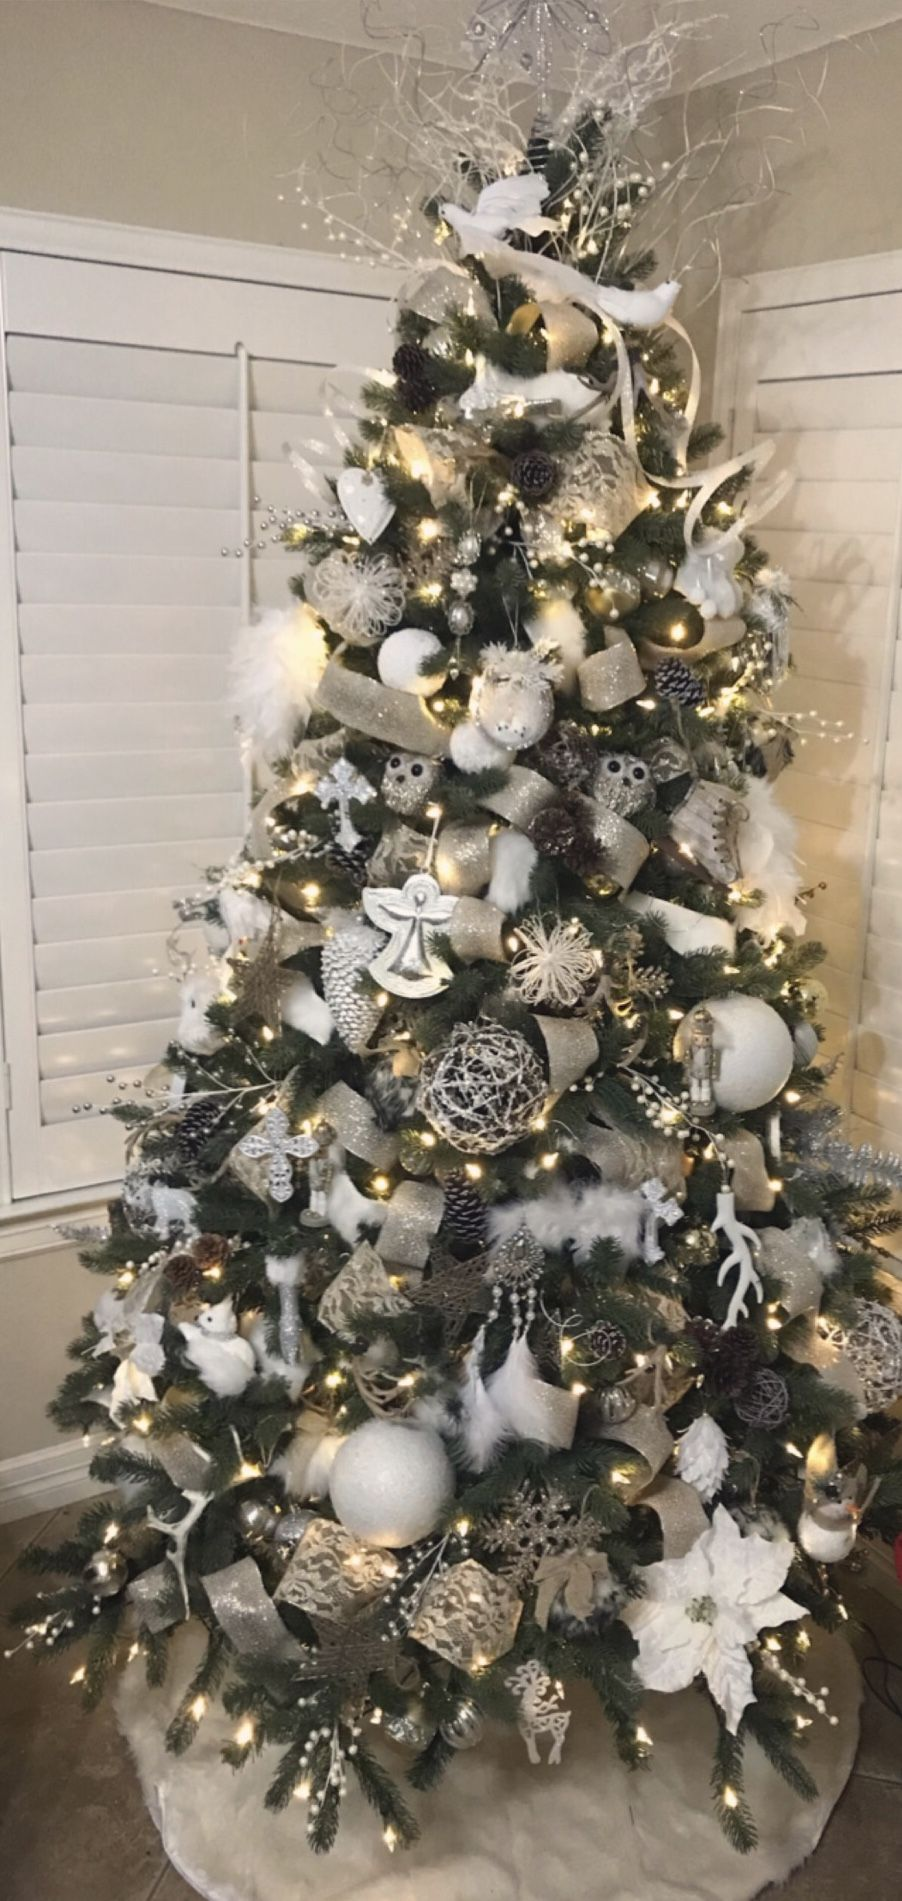 White Silver Gold Christmas Decor Rustic Glam Christmas Tree Glam Christmas Tree Gold Christmas Decorations Gold Christmas Tree Decorations